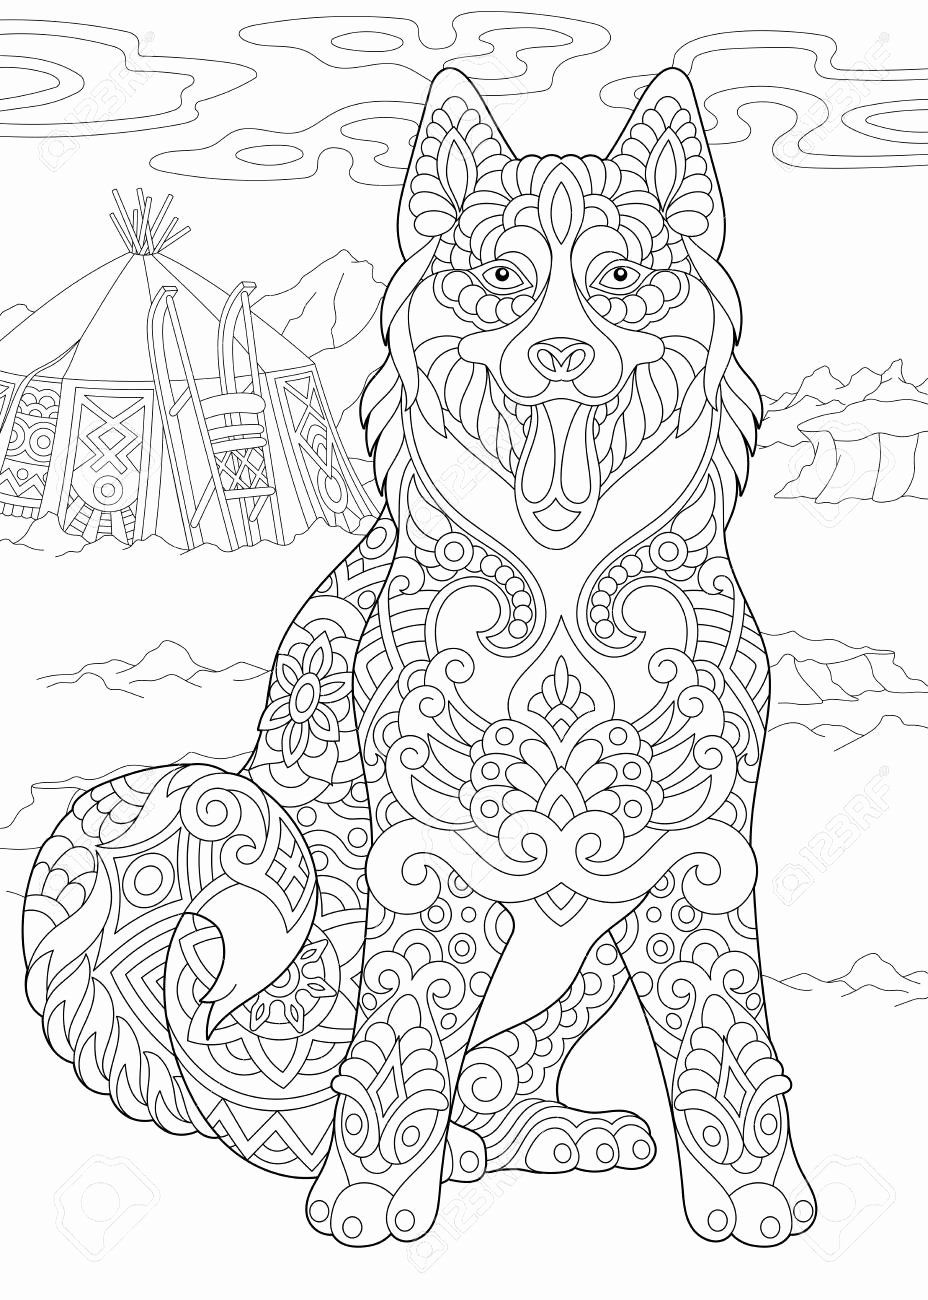 Pin On Top Animals Coloring Pages [ 1300 x 928 Pixel ]